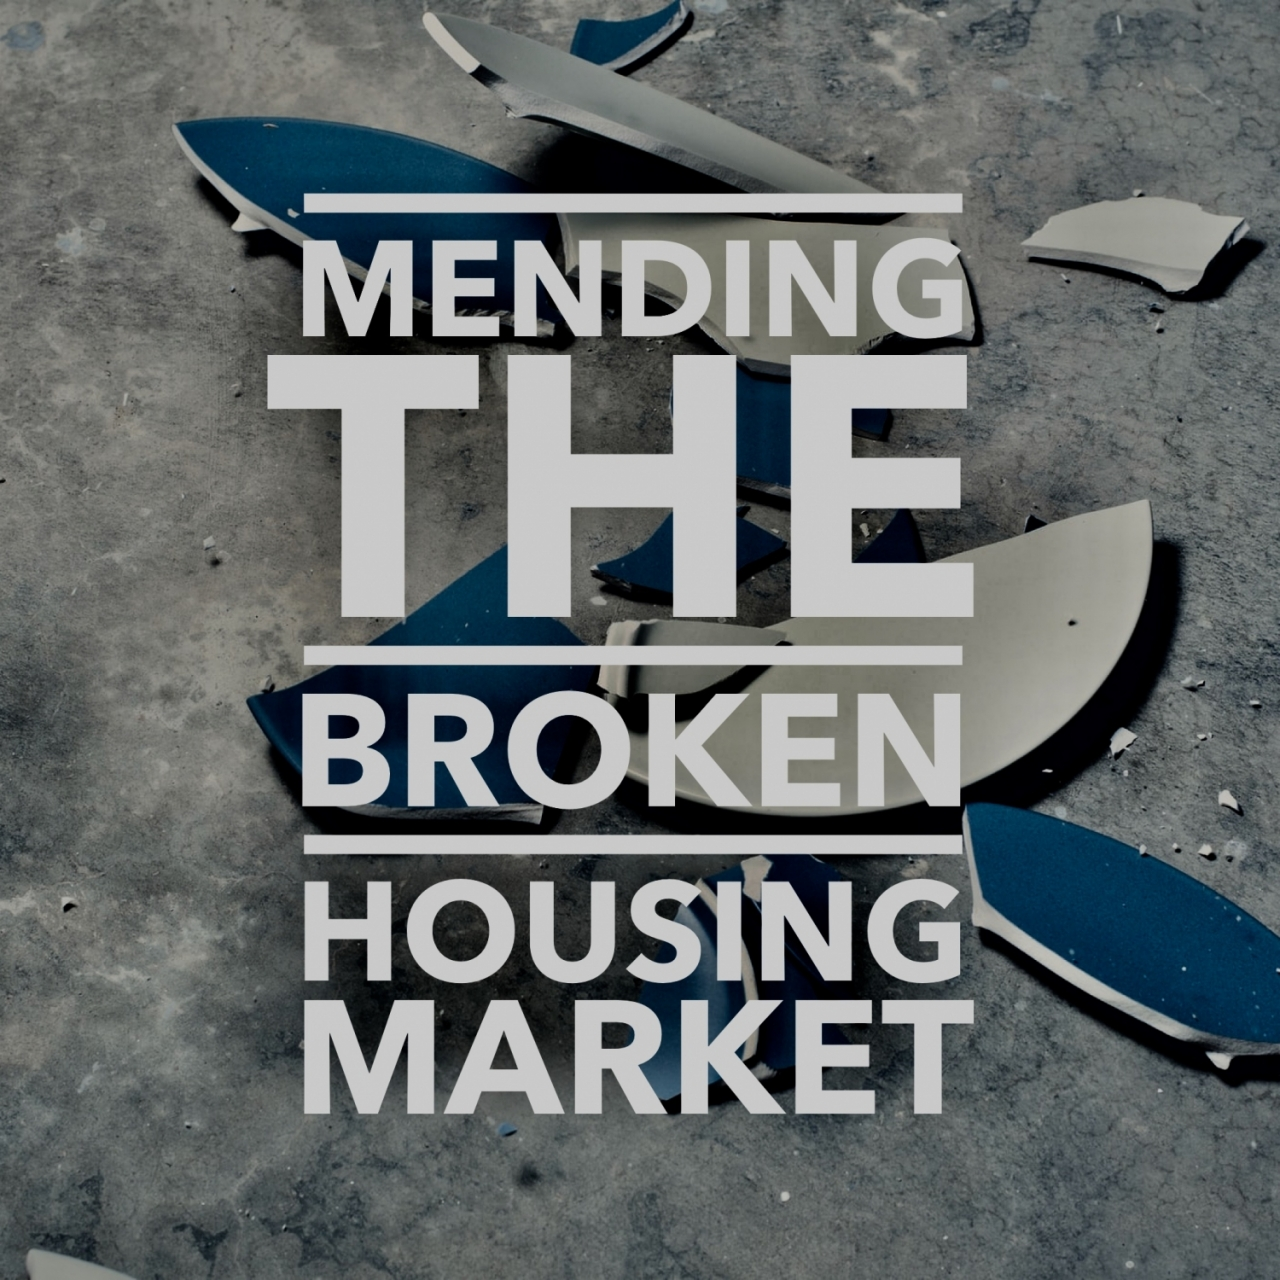 >Mending the Broken Sidcup and Bexley Property Mark